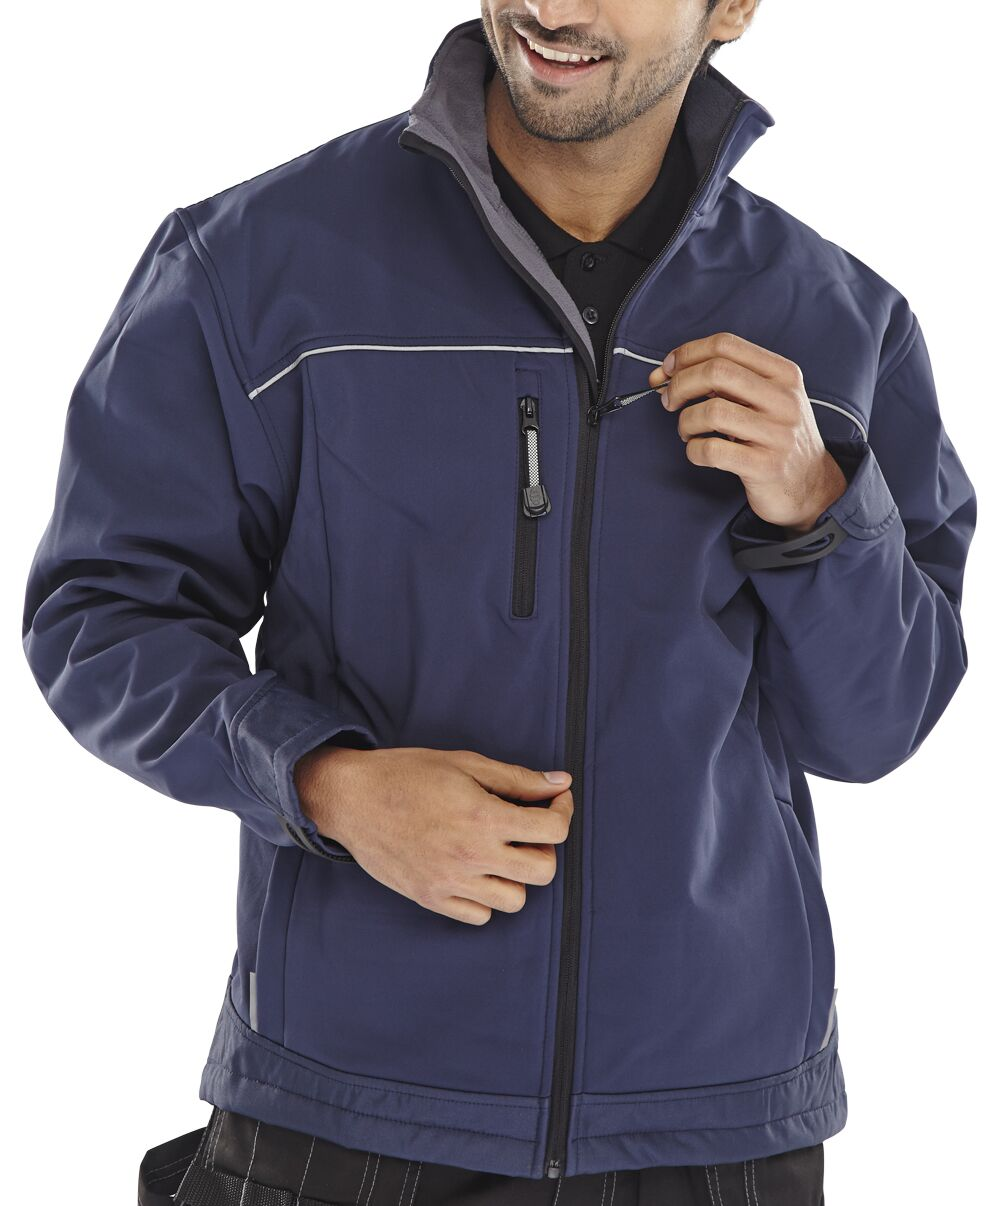 Body Protection Click Workwear Soft Shell Jacket Water Resistant Windproof 5XL Navy Ref SSJN5XL *Approx 3 Day Leadtime*